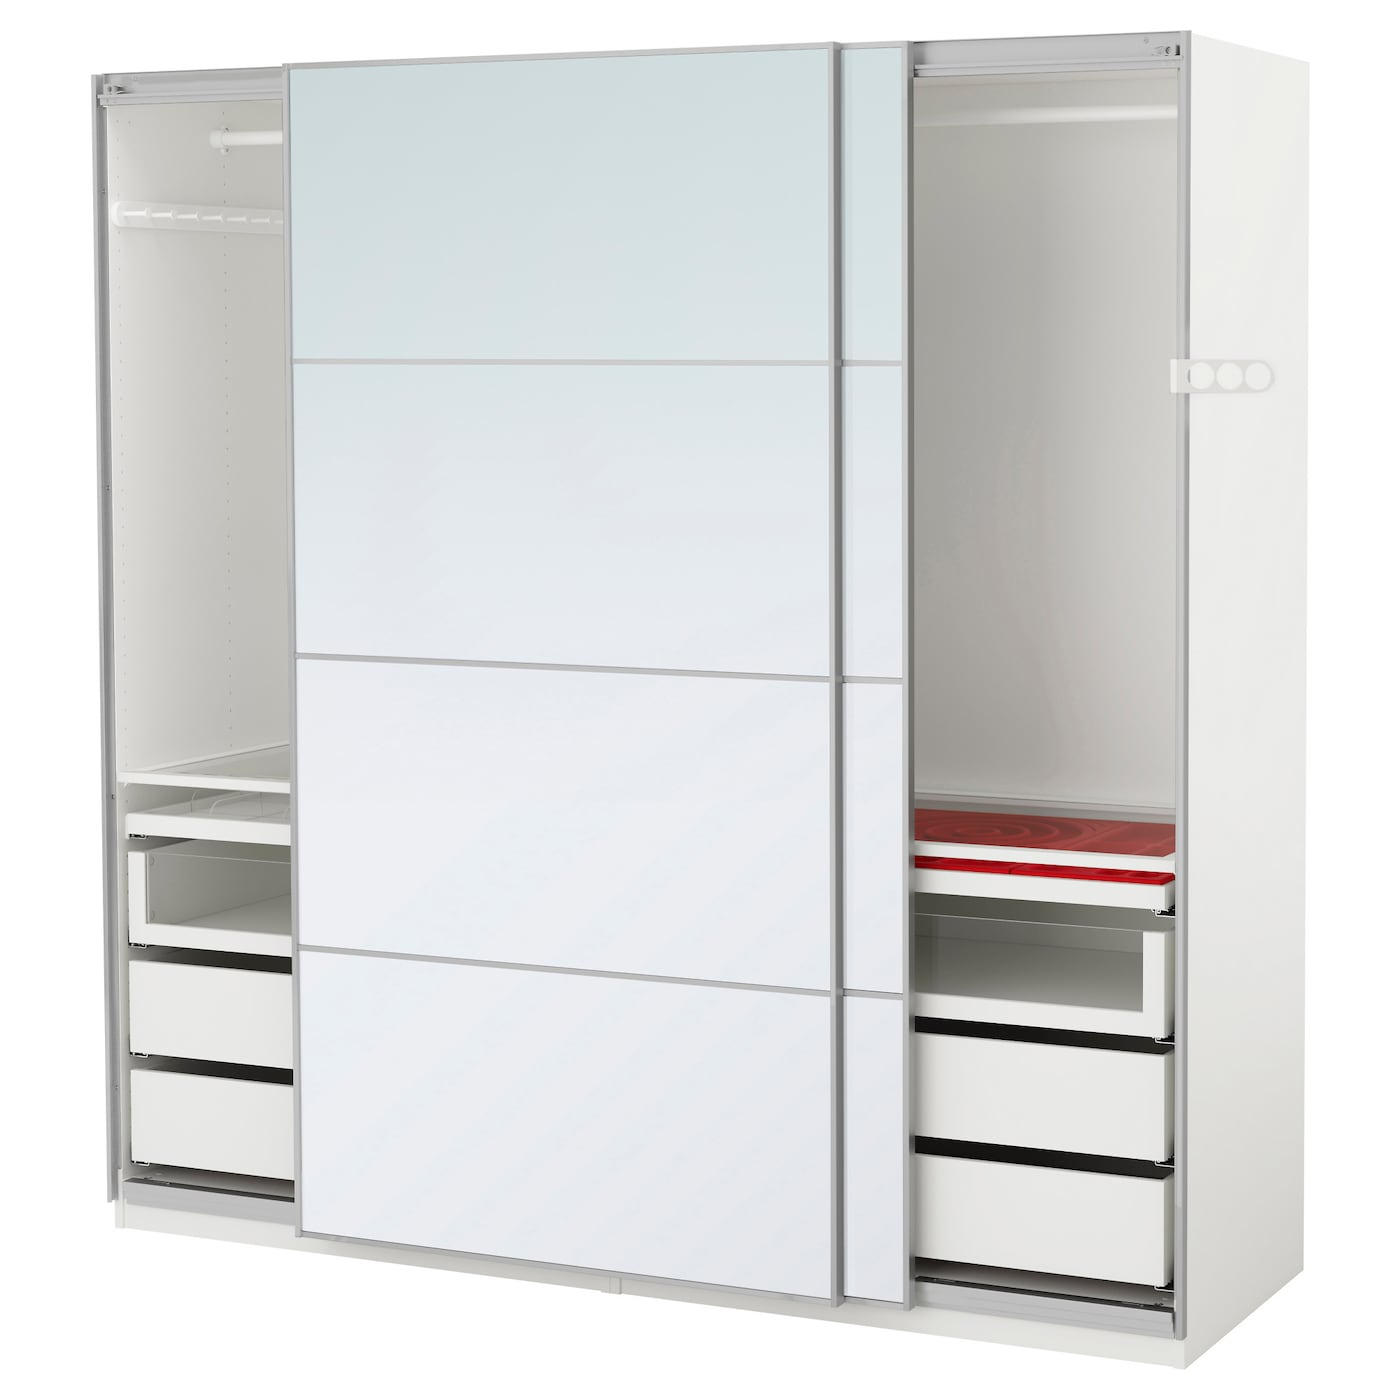 Pax wardrobe white auli mirror glass 200x66x201 cm ikea - Ikea armoire with mirror ...